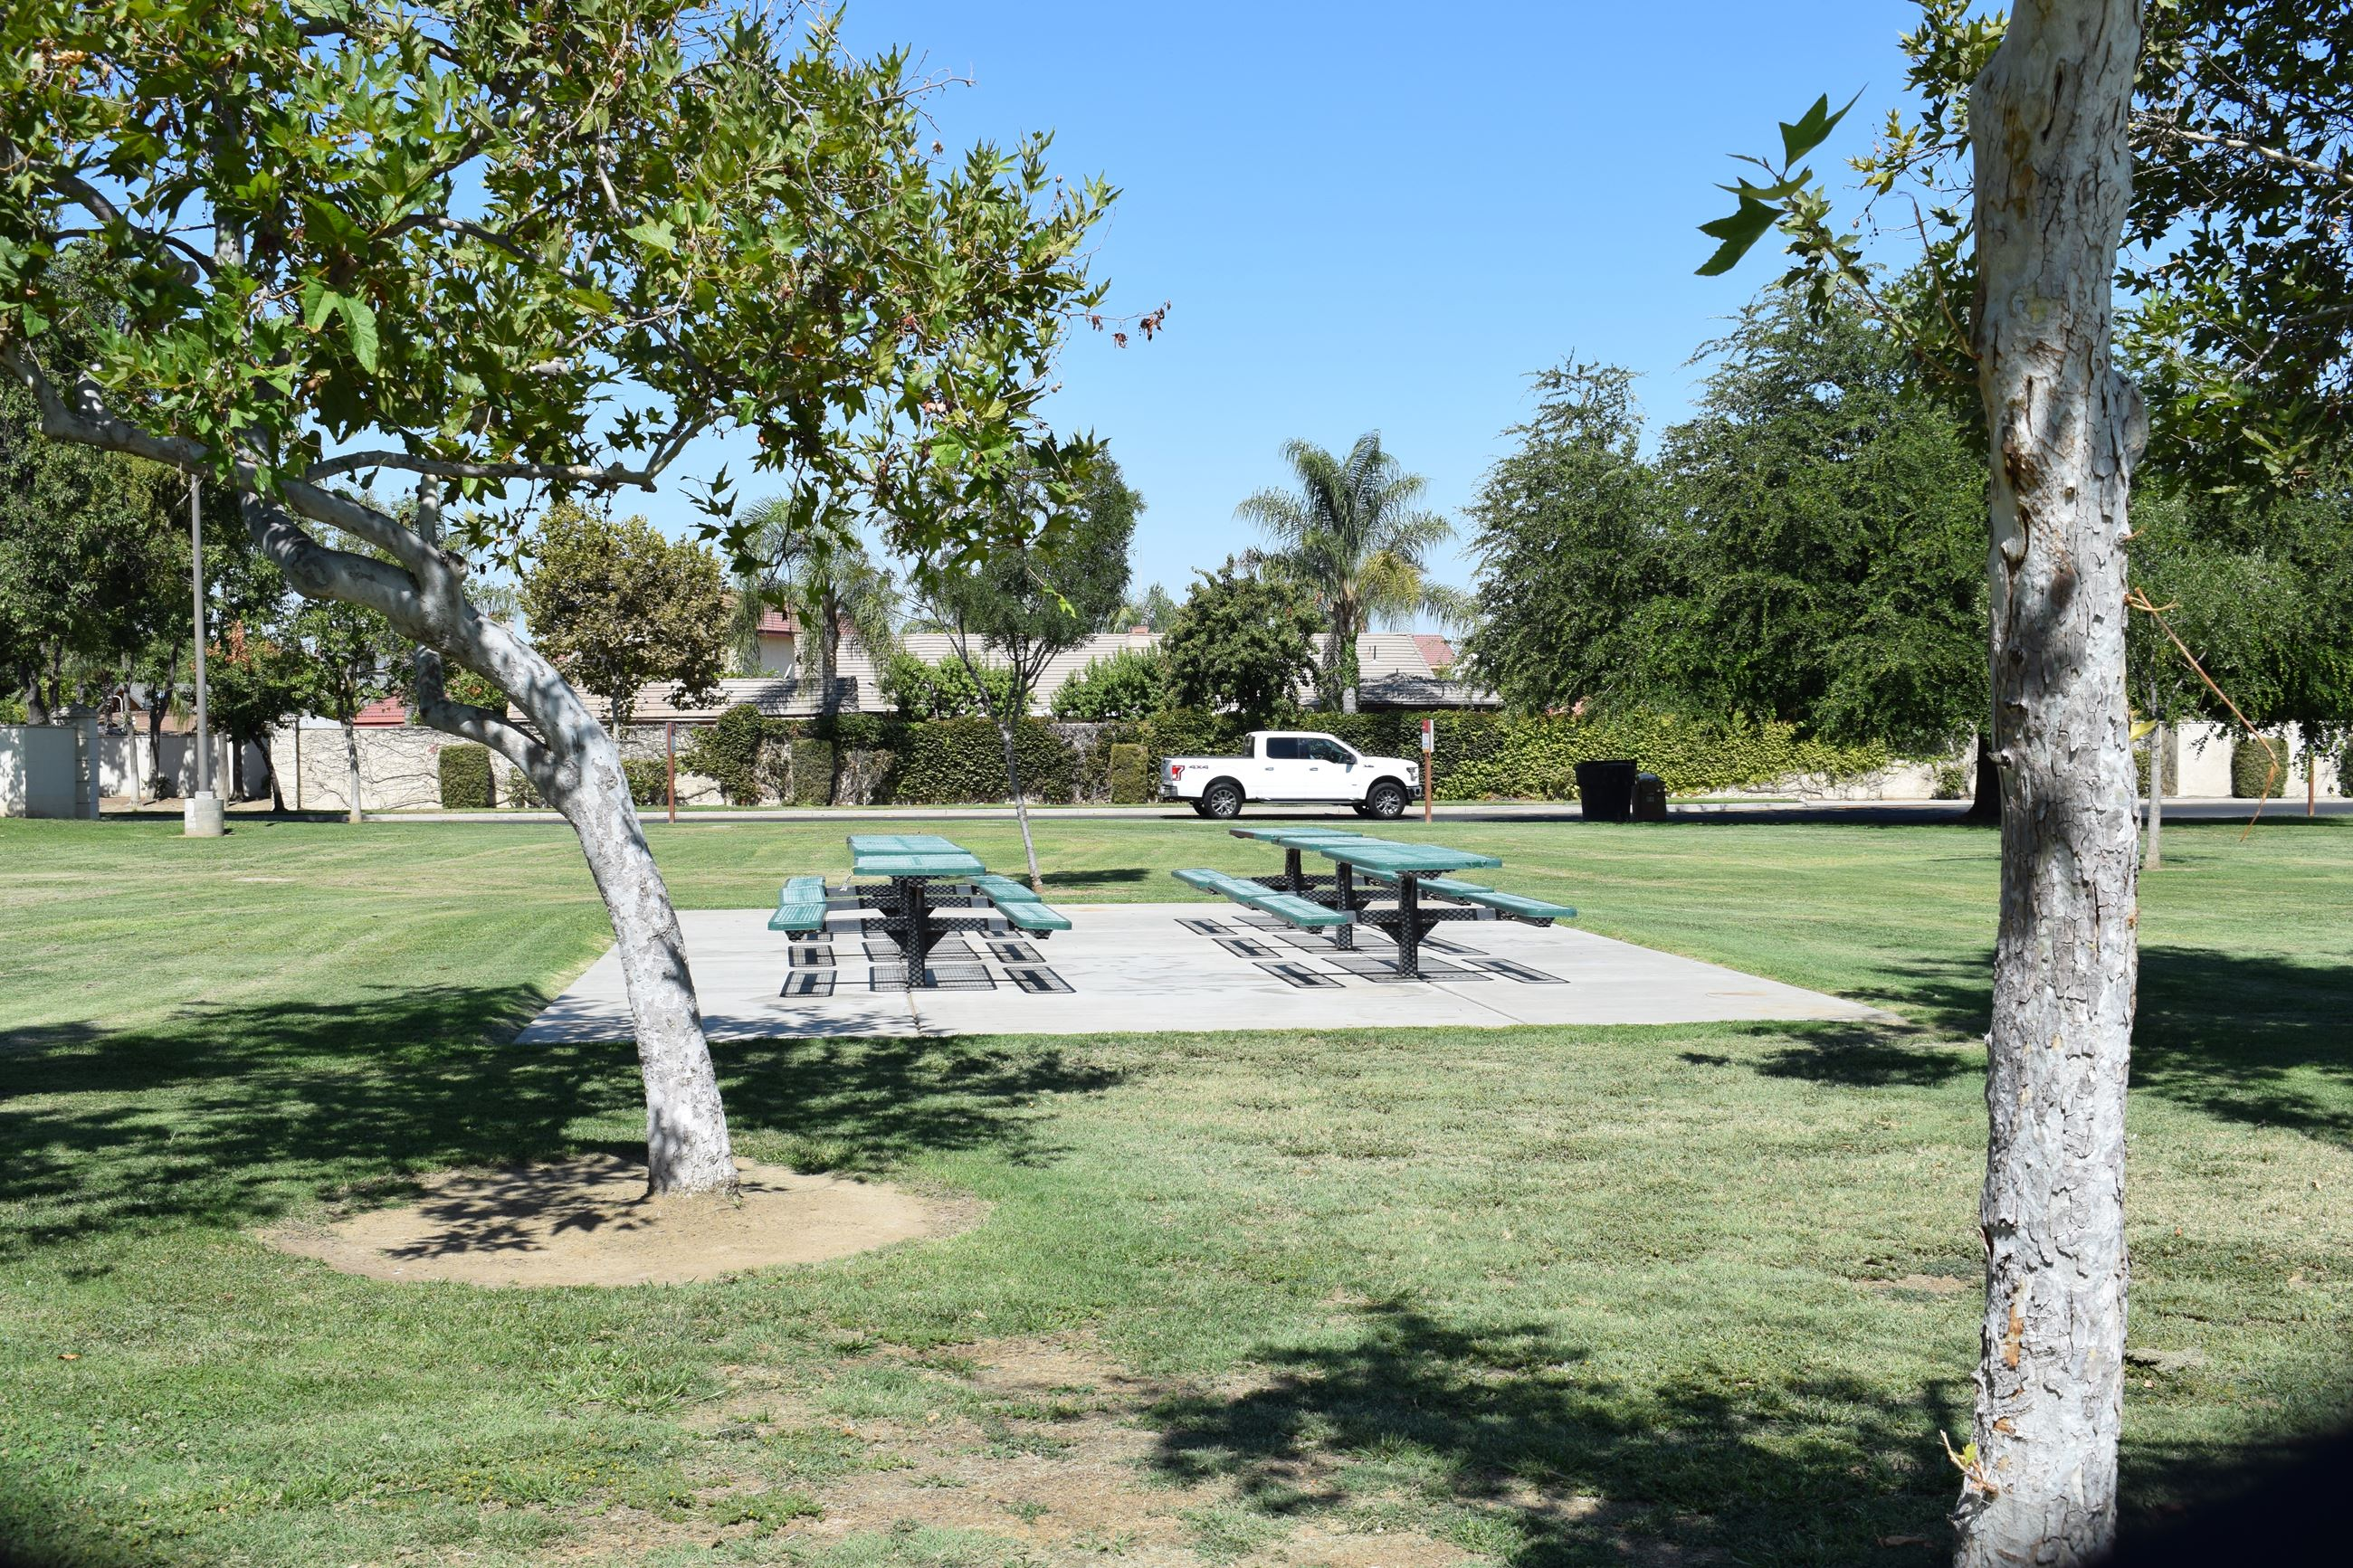 Moringside Park bench area 2